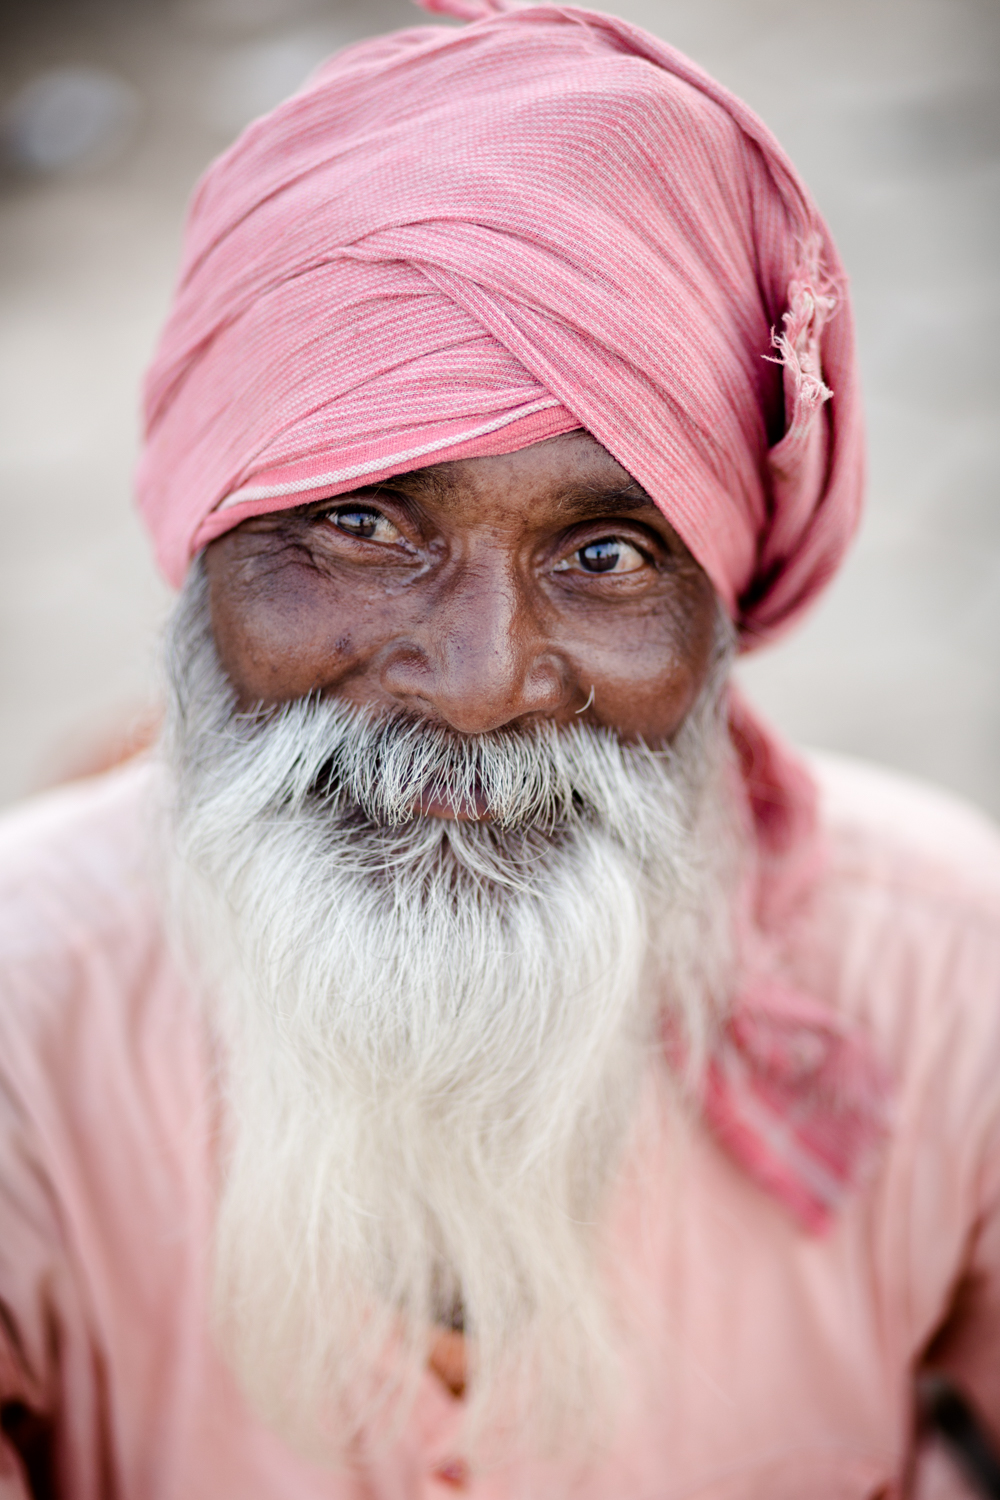 A Sadhu sitting by the Shipra River. Kumbh Mela provides an opportunity for Sadhus (Hindu monks) to interact with lay people.